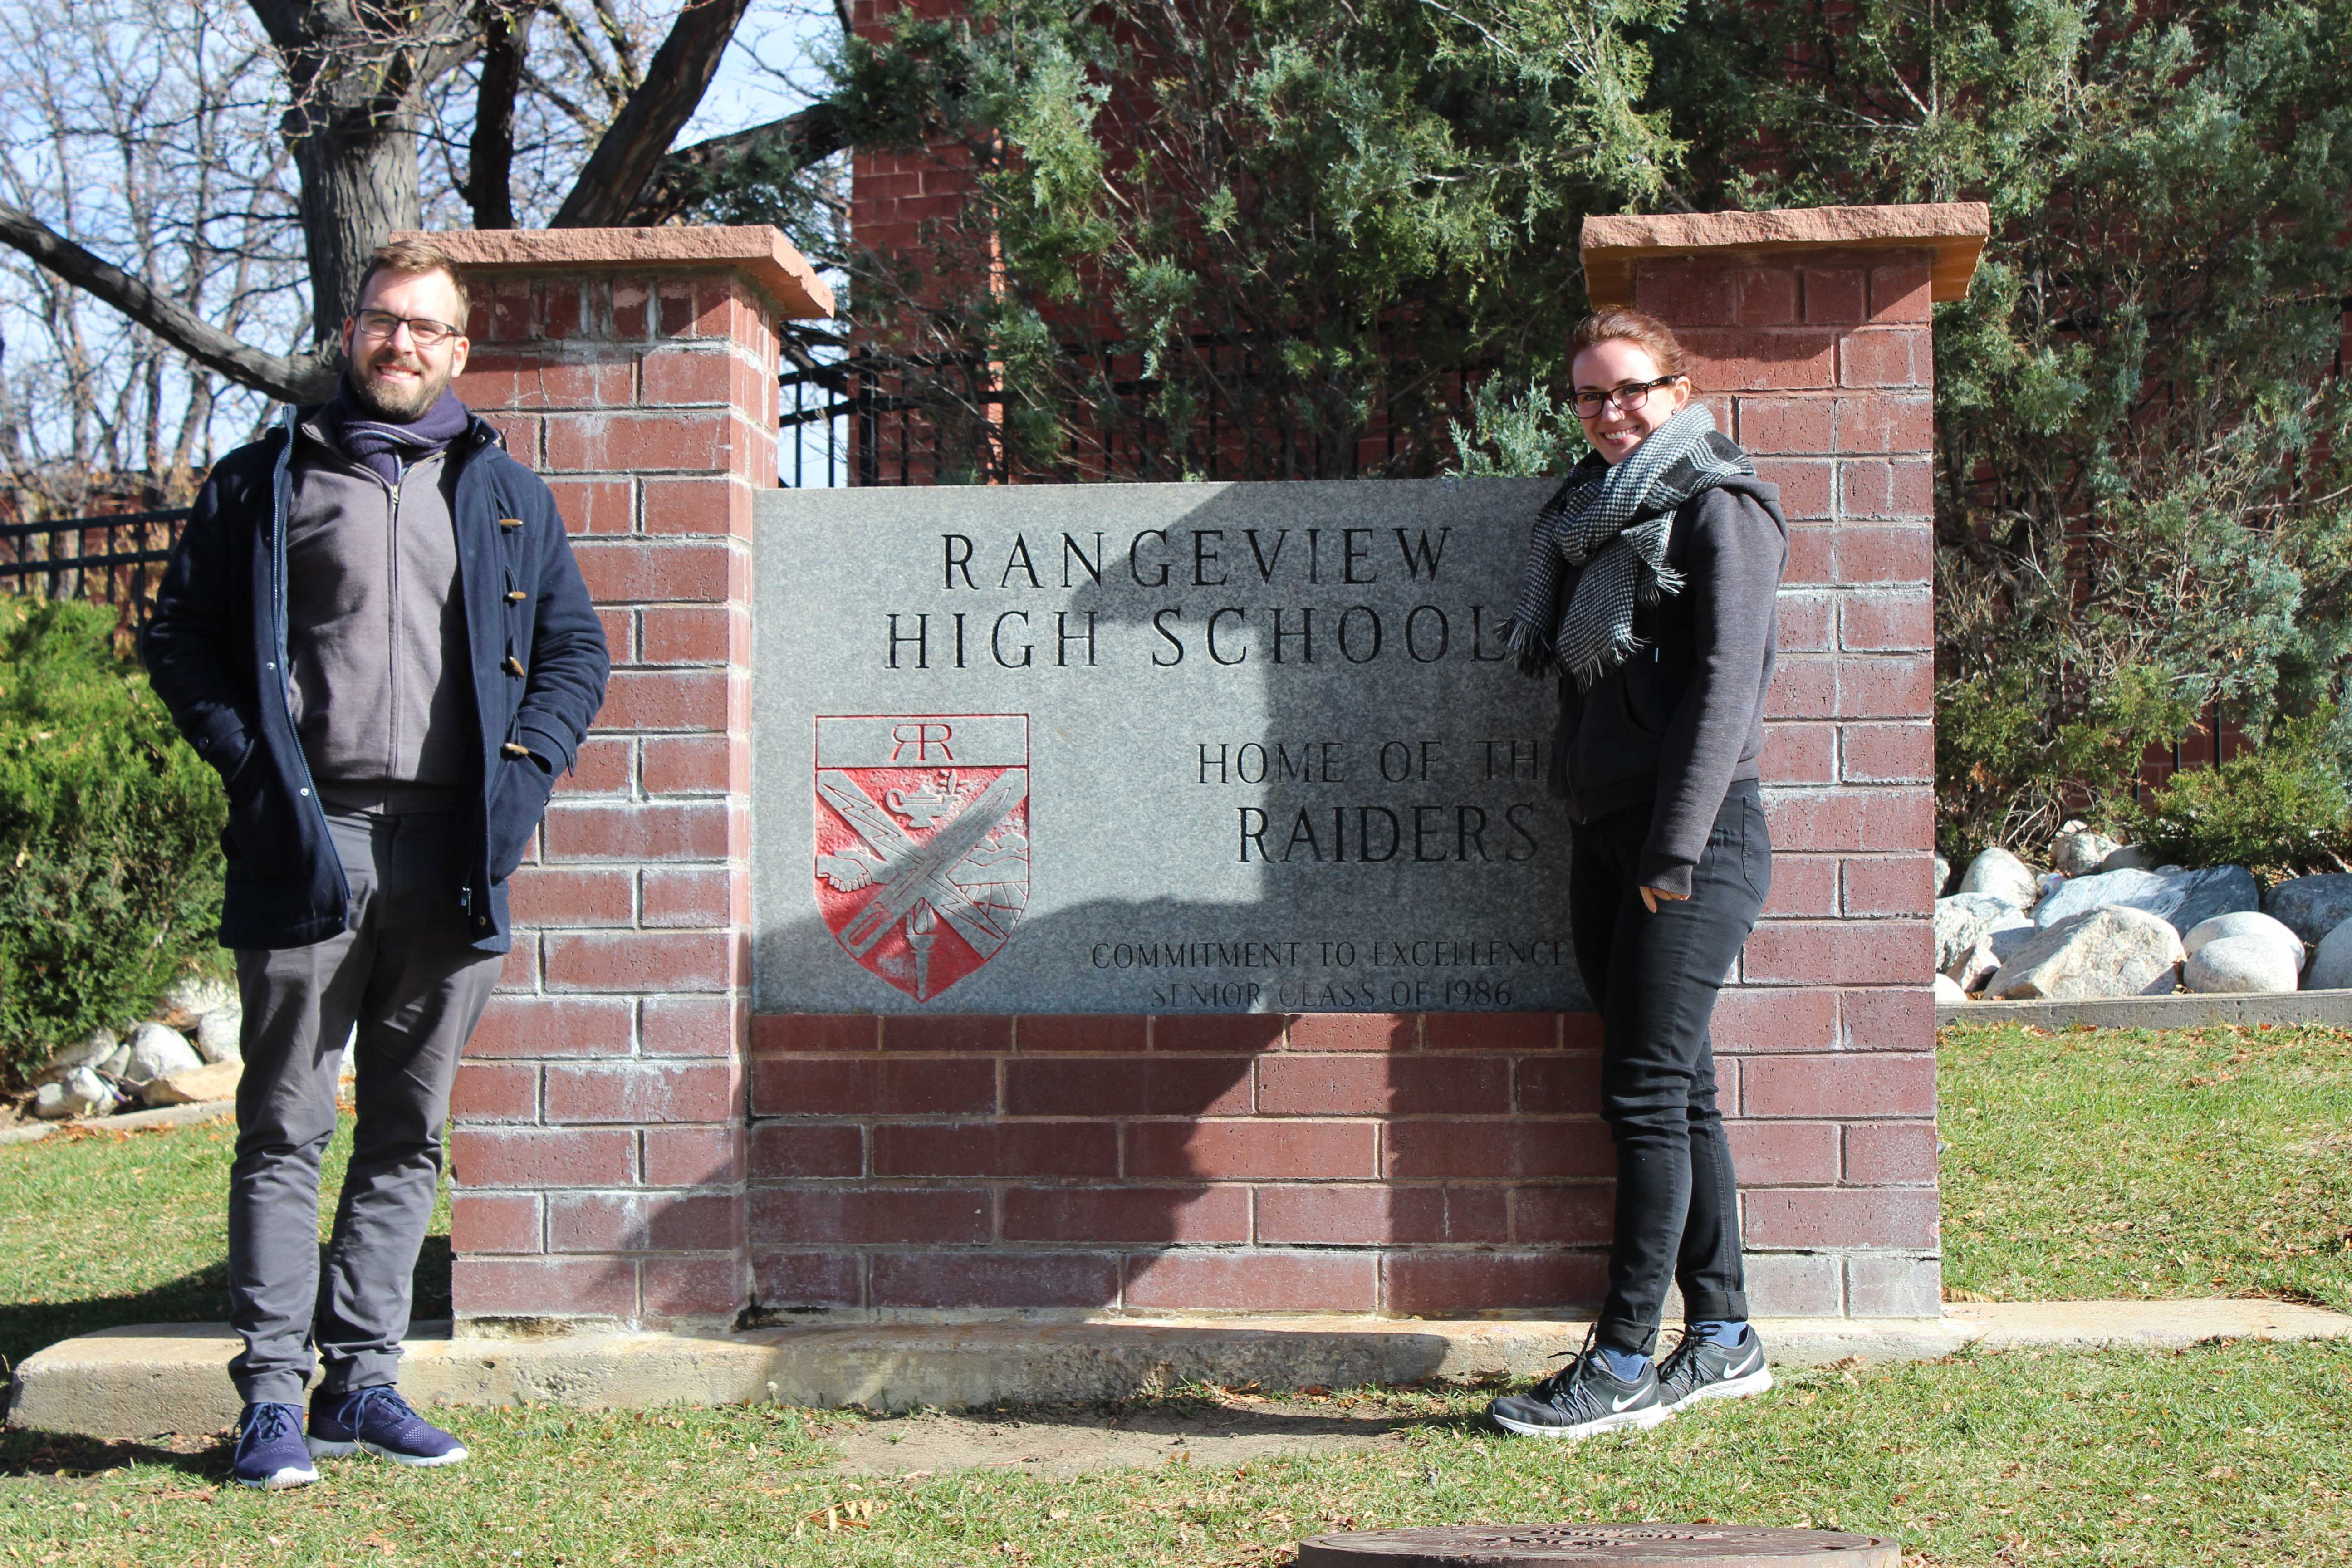 Opinion: A visit to Rangeview from a German perspective